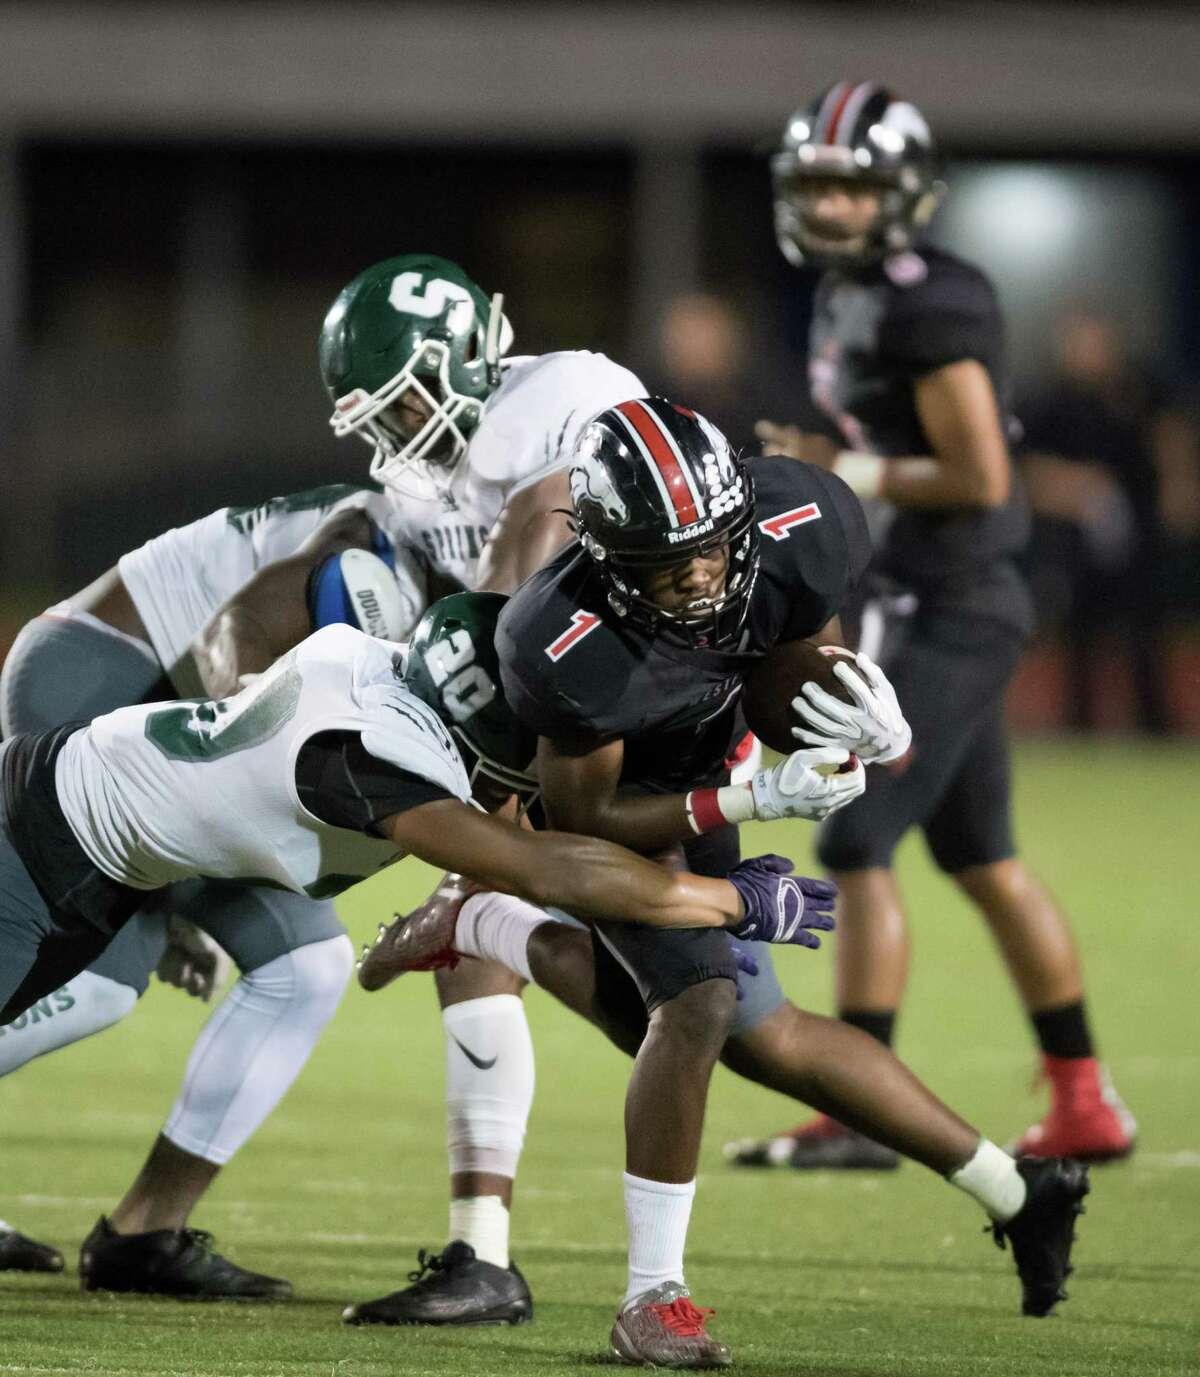 Rayshawn James (1) of the Westfield Mustangs runs up the middle in the second half against the Spring Lions in a high school football game on Friday, September 23, 2016 at George Stadium in Spring Texas.